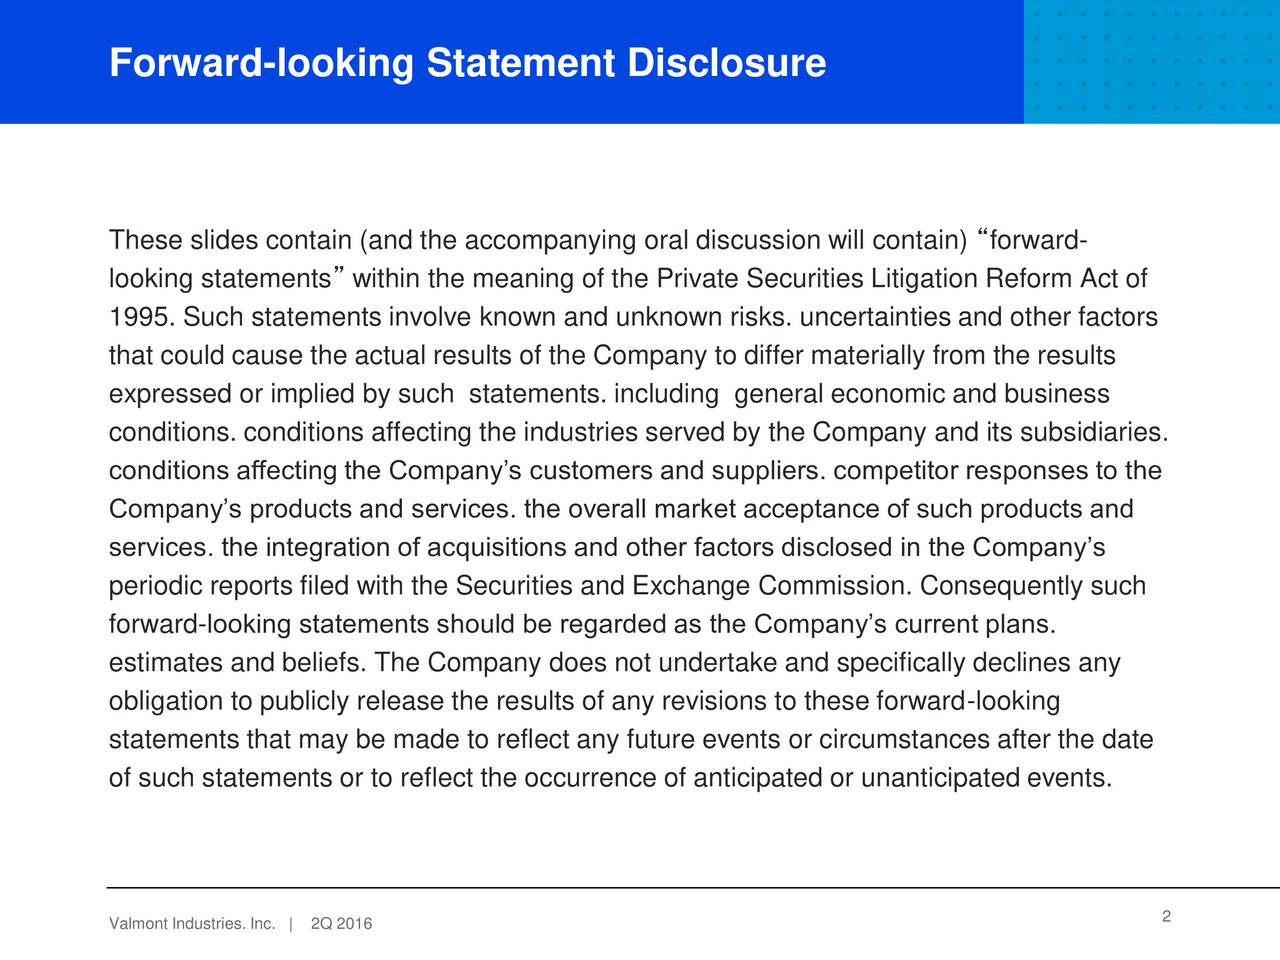 These slides contain (and the accompanying oral discussion will contain) forward- looking statements within the meaning of the Private Securities Litigation Reform Act of 1995. Such statements involve known and unknown risks. uncertainties and other factors that could cause the actual results of the Company to differ materially from the results expressed or implied by such statements. including general economic and business conditions. conditions affecting the industries served by the Company and its subsidiaries. conditions affecting the Companys customers and suppliers. competitor responses to the Companys products and services. the overall market acceptance of such products and services. the integration of acquisitions and other factors disclosed in the Companys periodic reports filed with the Securities and Exchange Commission. Consequently such forward-looking statements should be regarded as the Companys current plans. estimates and beliefs. The Company does not undertake and specifically declines any obligation to publicly release the results of any revisions to these forward-looking statements that may be made to reflect any future events or circumstances after the date of such statements or to reflect the occurrence of anticipated or unanticipated events. Valmont Industries2Q 2016| 2